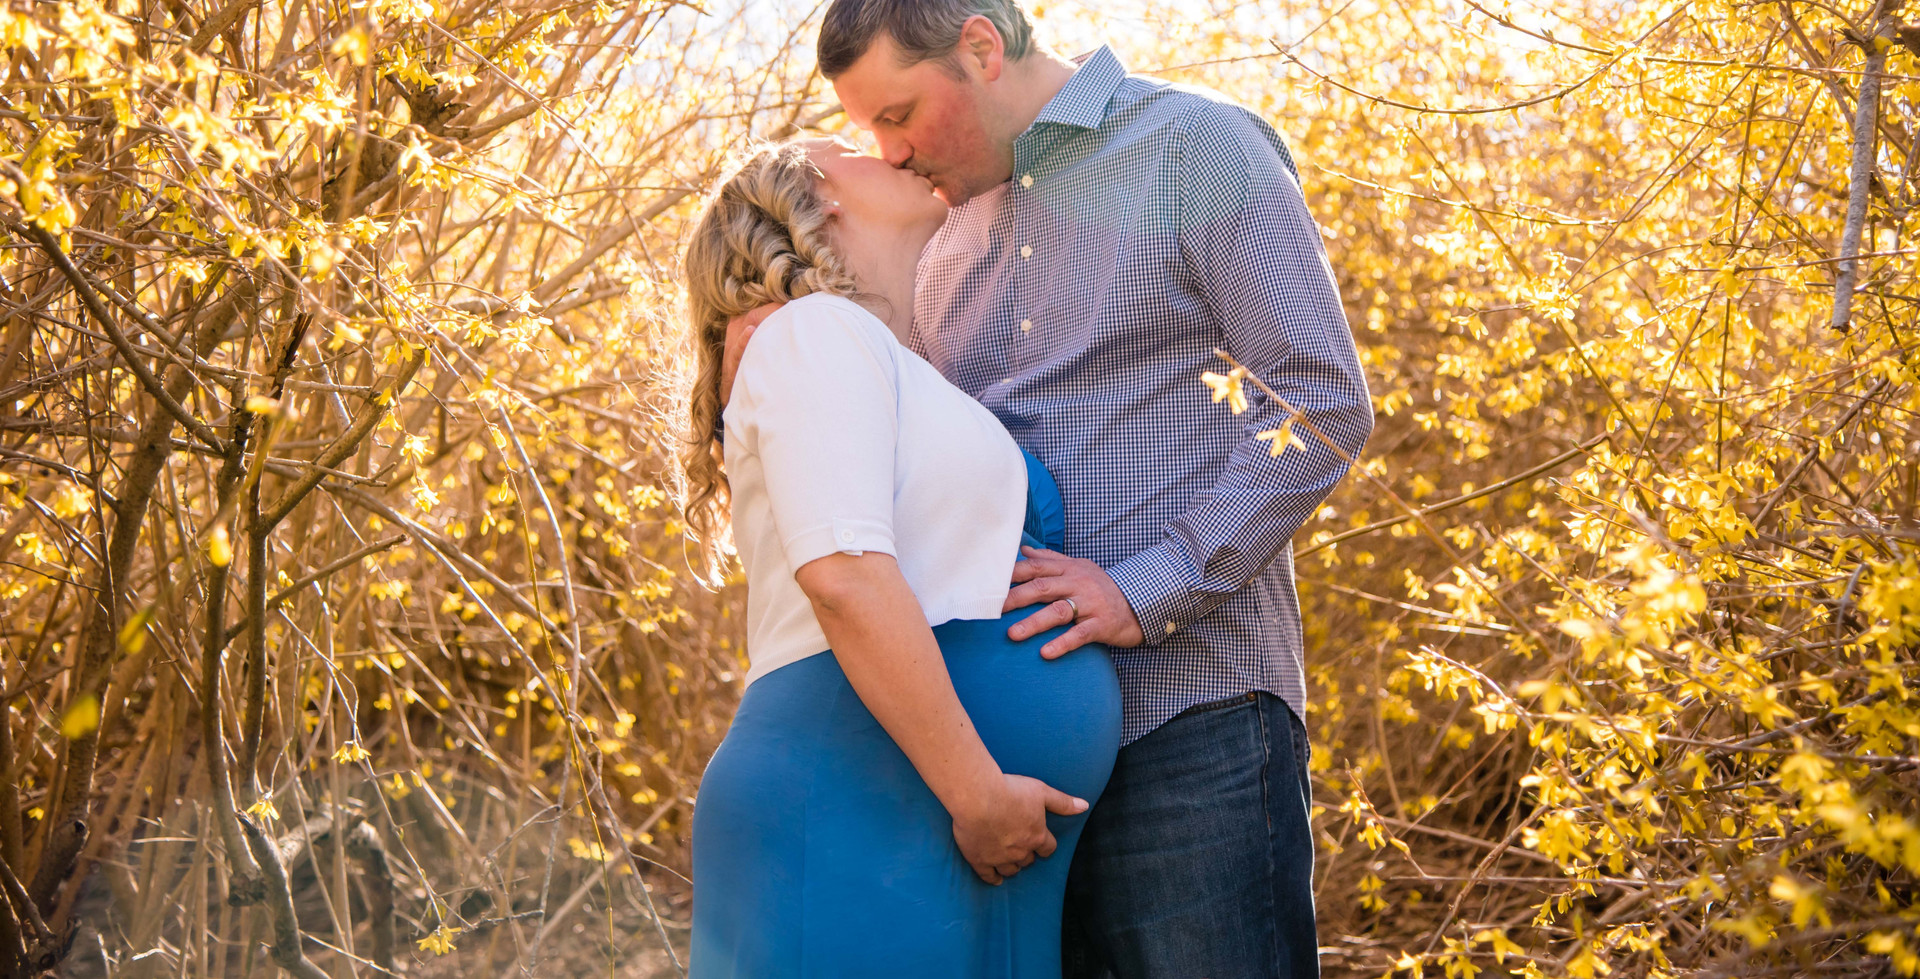 Iris MacKinnon Photography Family Photography Maternity Photography